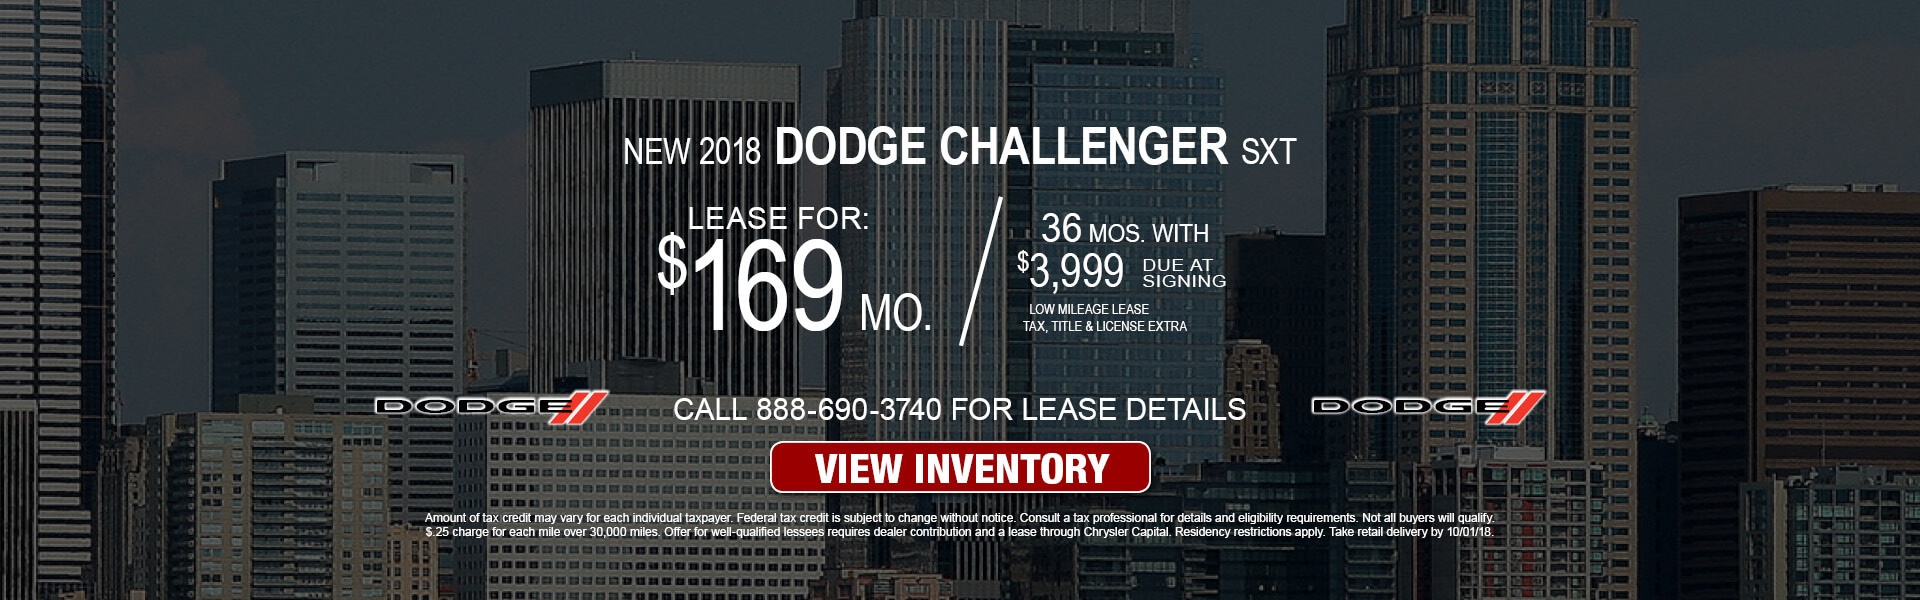 Dodge Challenger SXT $169 Lease